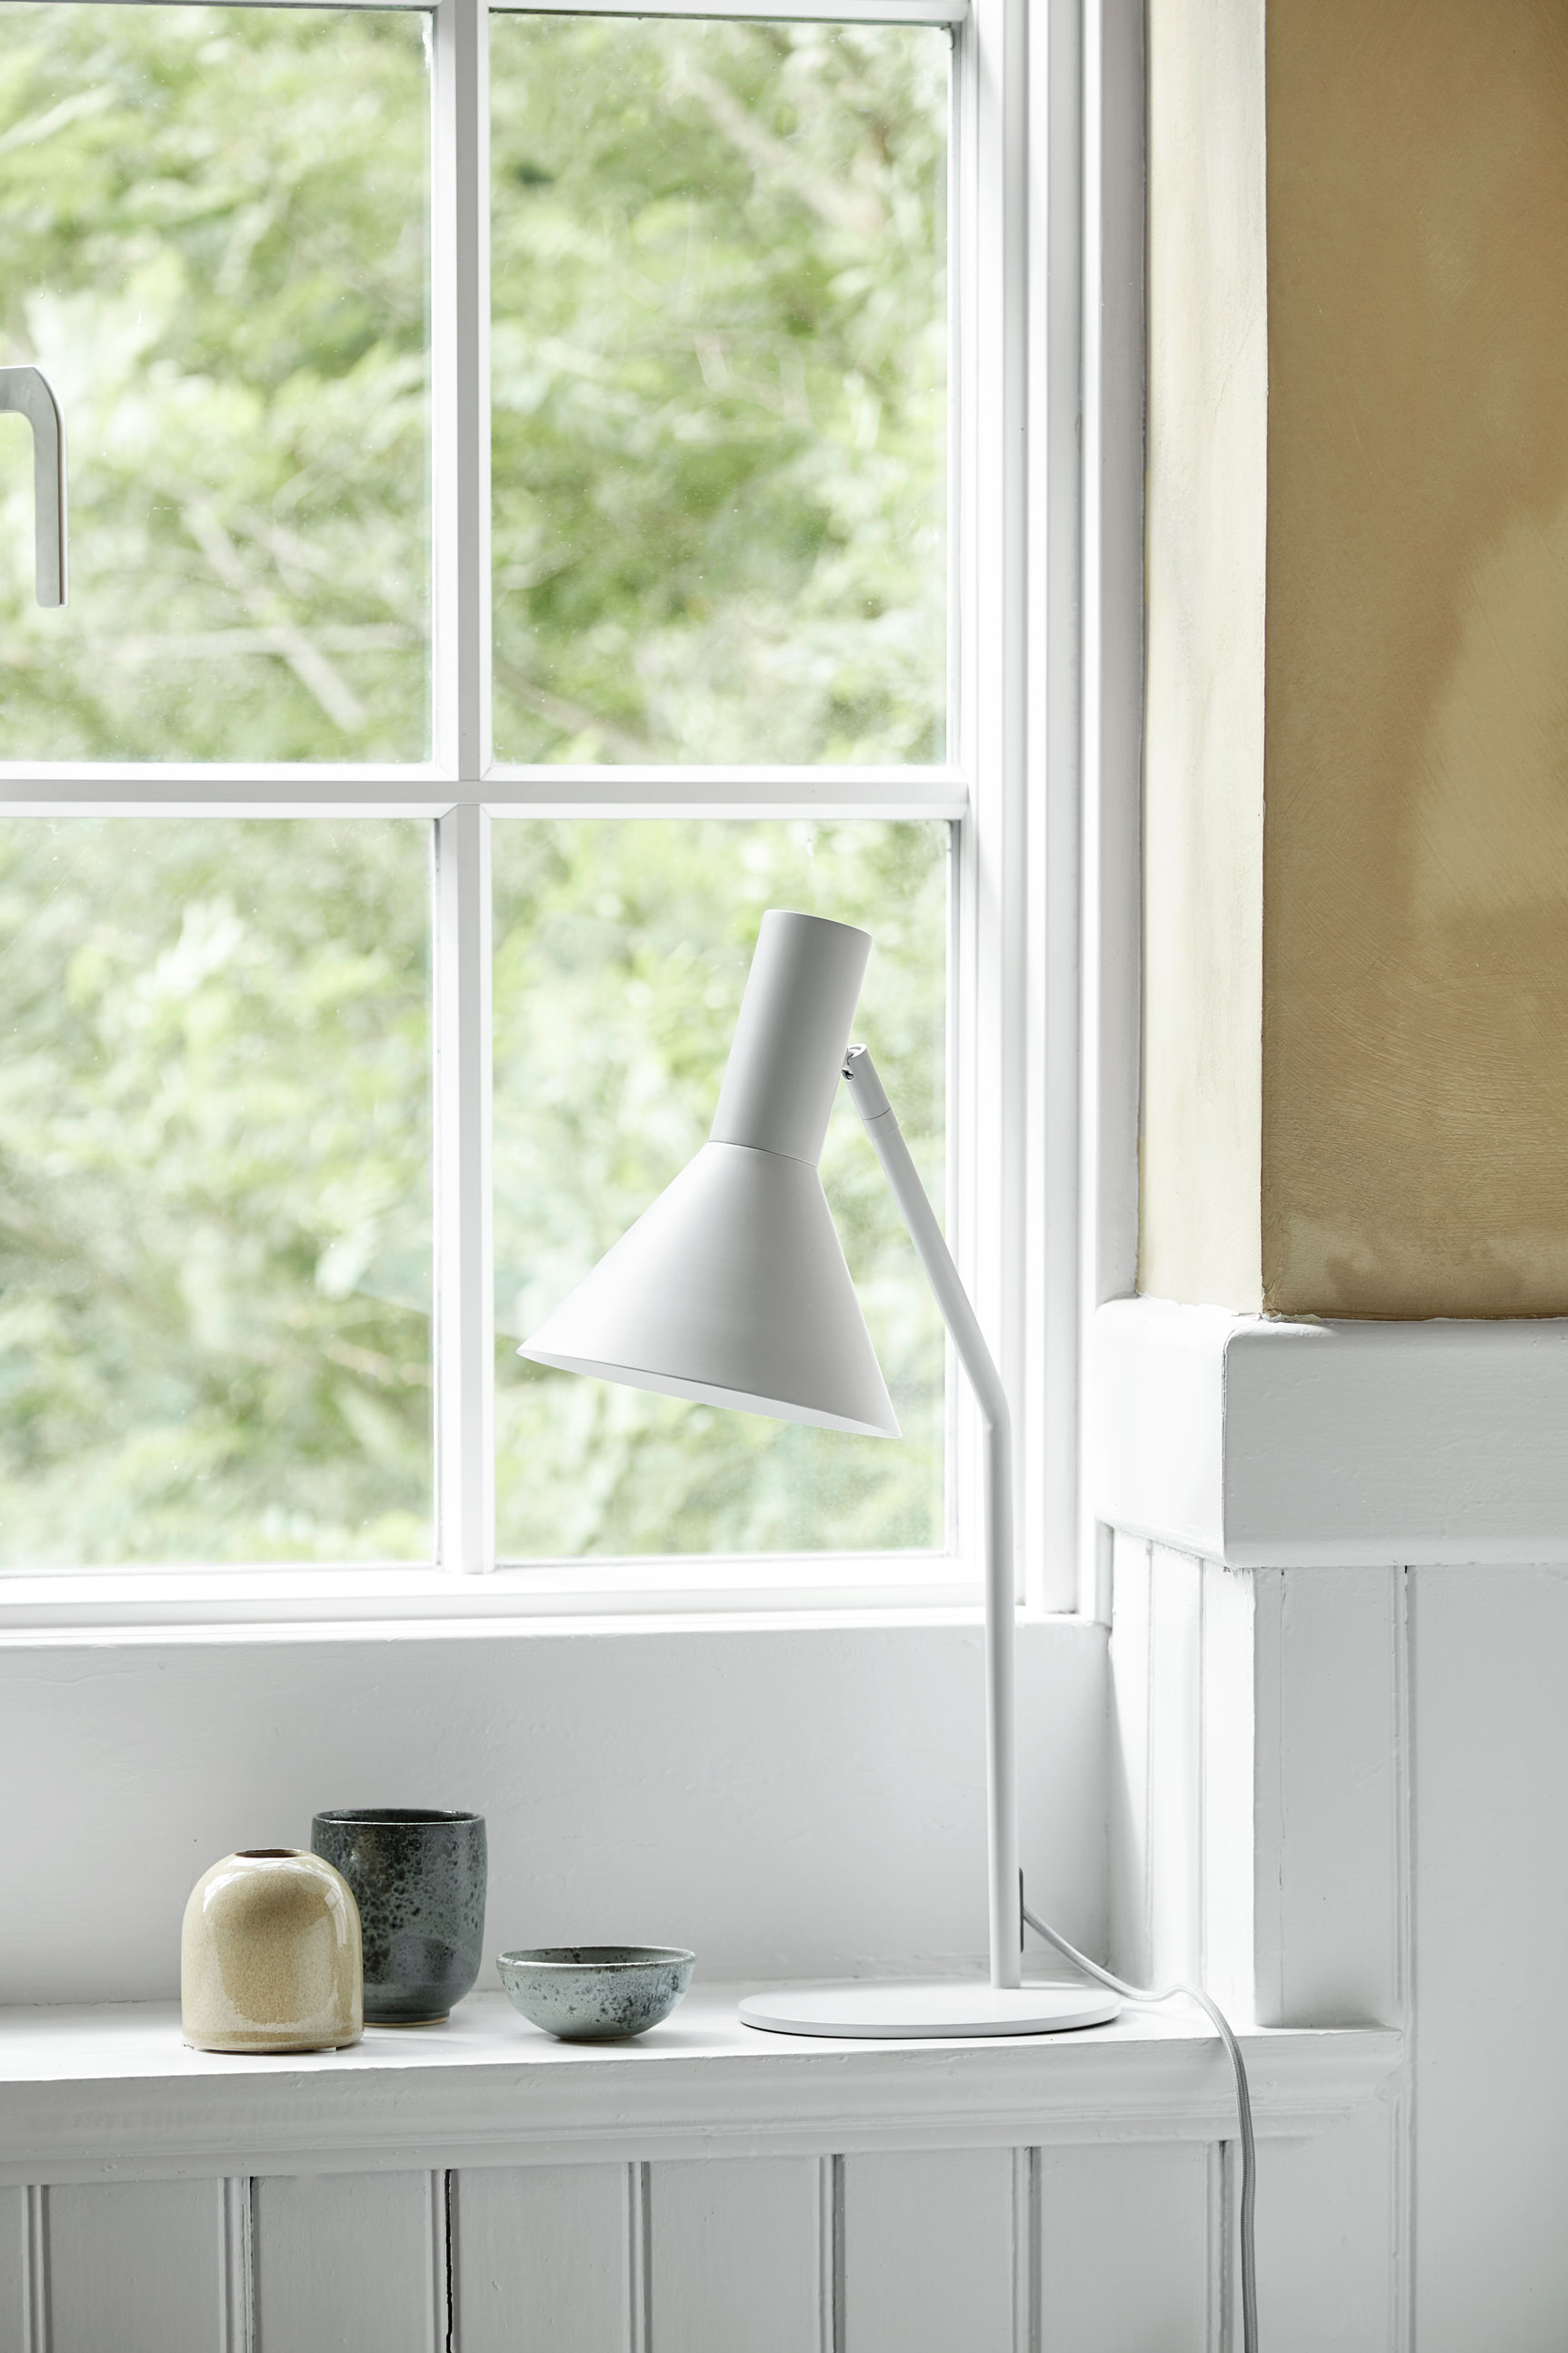 With its clear minimalist lines and full focus on functionality, the LYSS lamp series draws on the finest traditions and qualities of Danish design.   READ